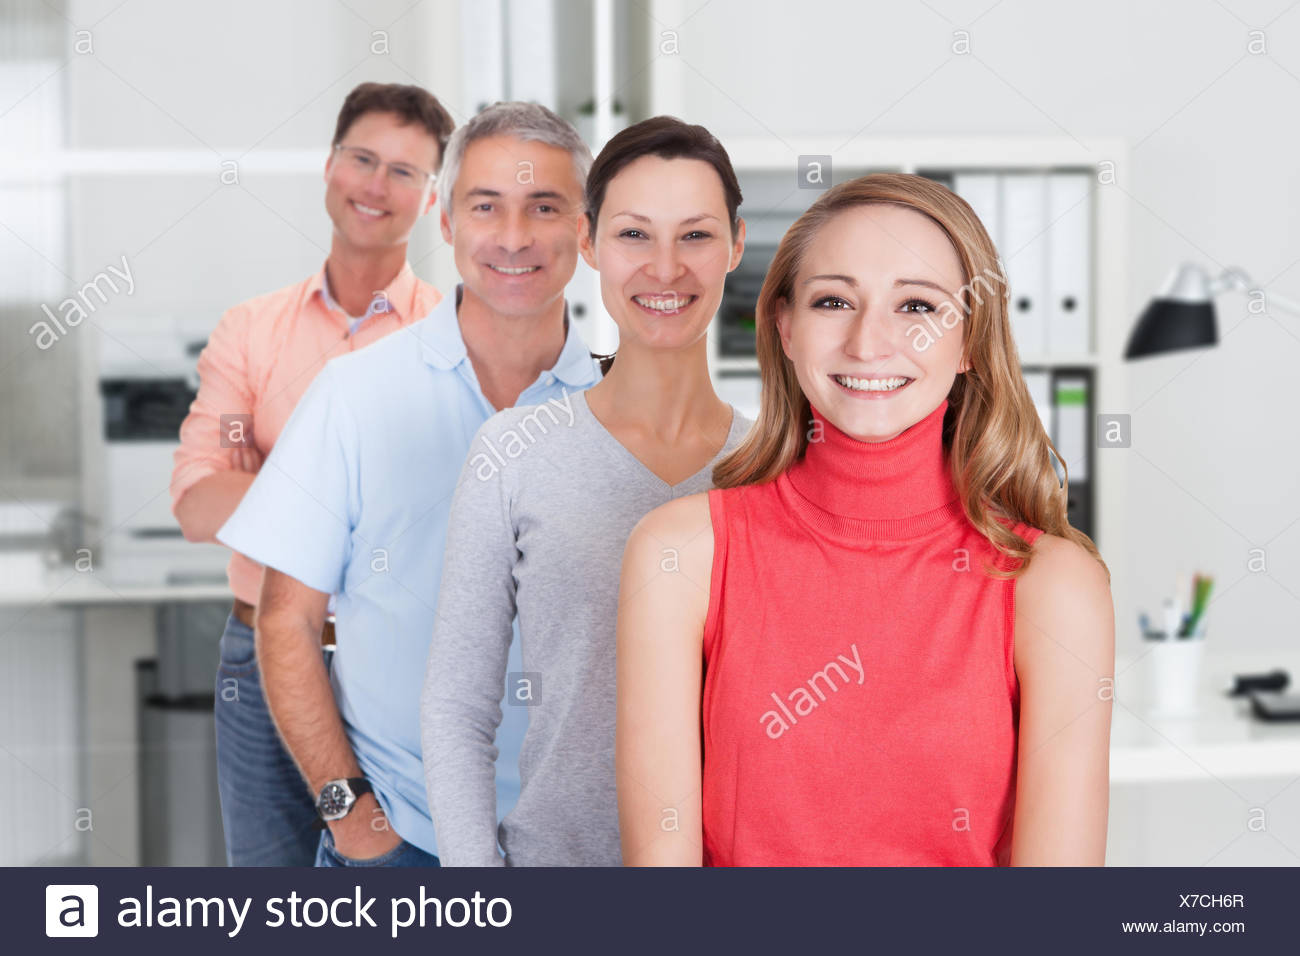 Four business associates in casual clothes - Stock Image